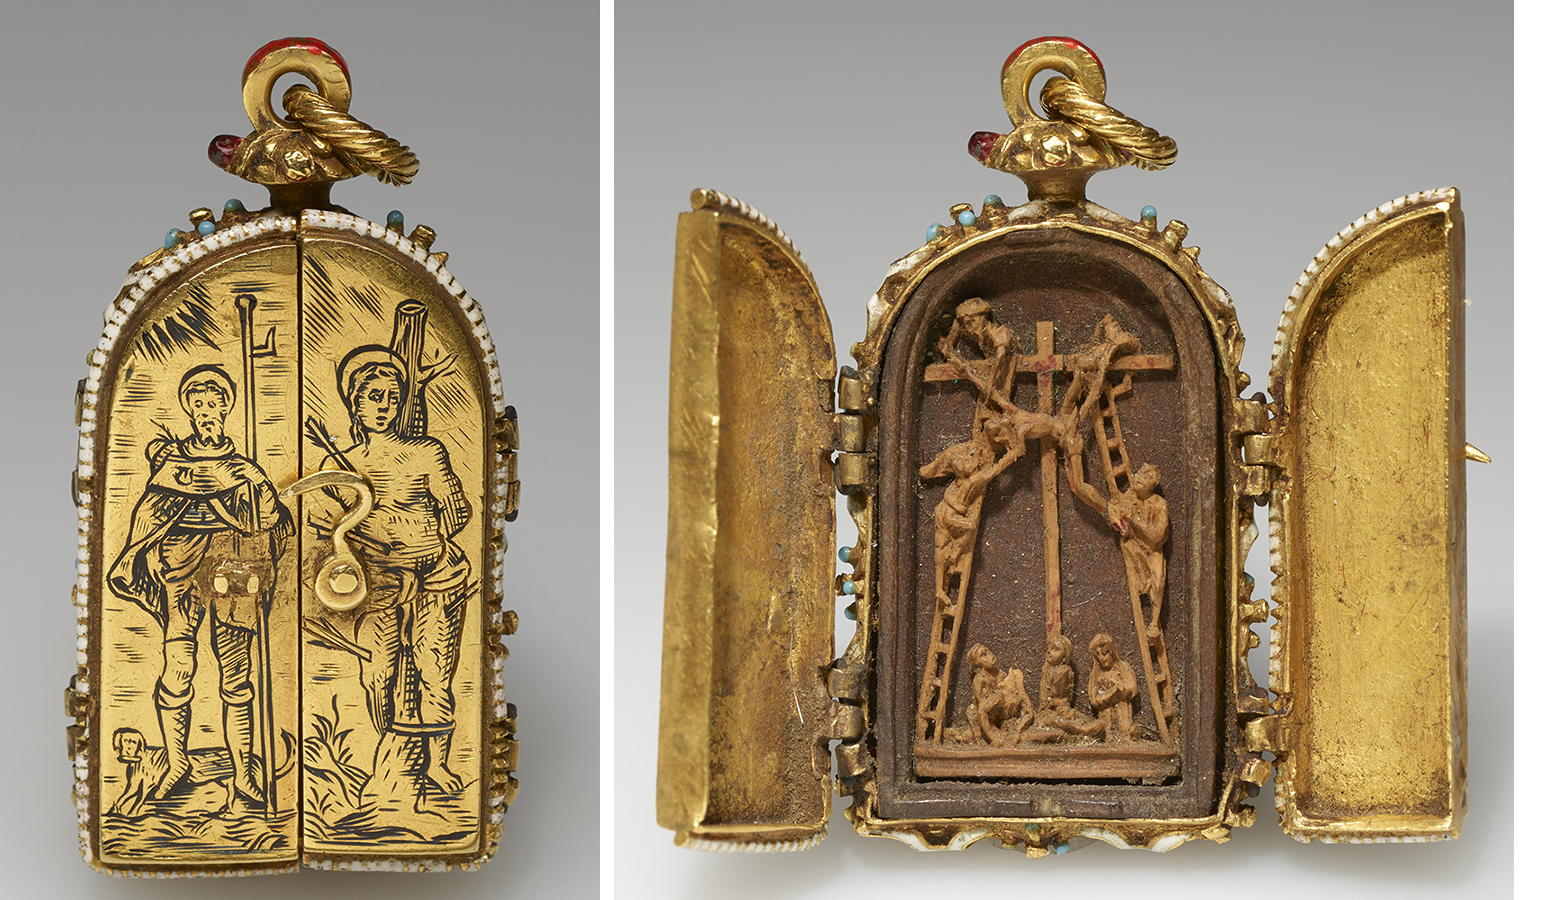 A tiny gold pendant that opens to reveal Christ's dead body being taken down from the cross. The exterior depicts two popular saints, Saint Roch and Saint Sebastian.